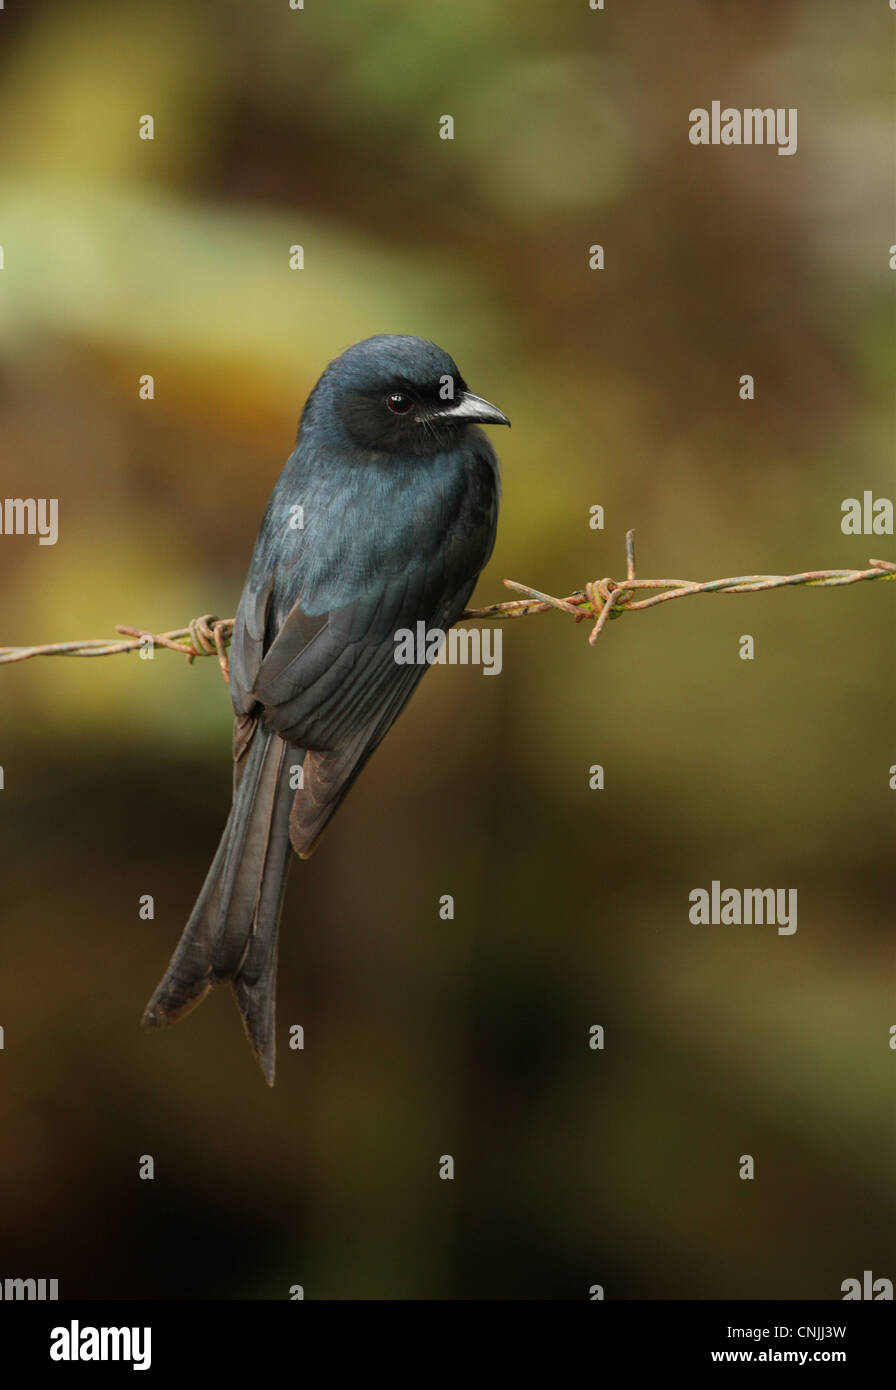 White-vented Drongo (Dicrurus caerulescens leucopygialis) endemic race, adult, perched on barbed wire, Sri Lanka,Stock Photo